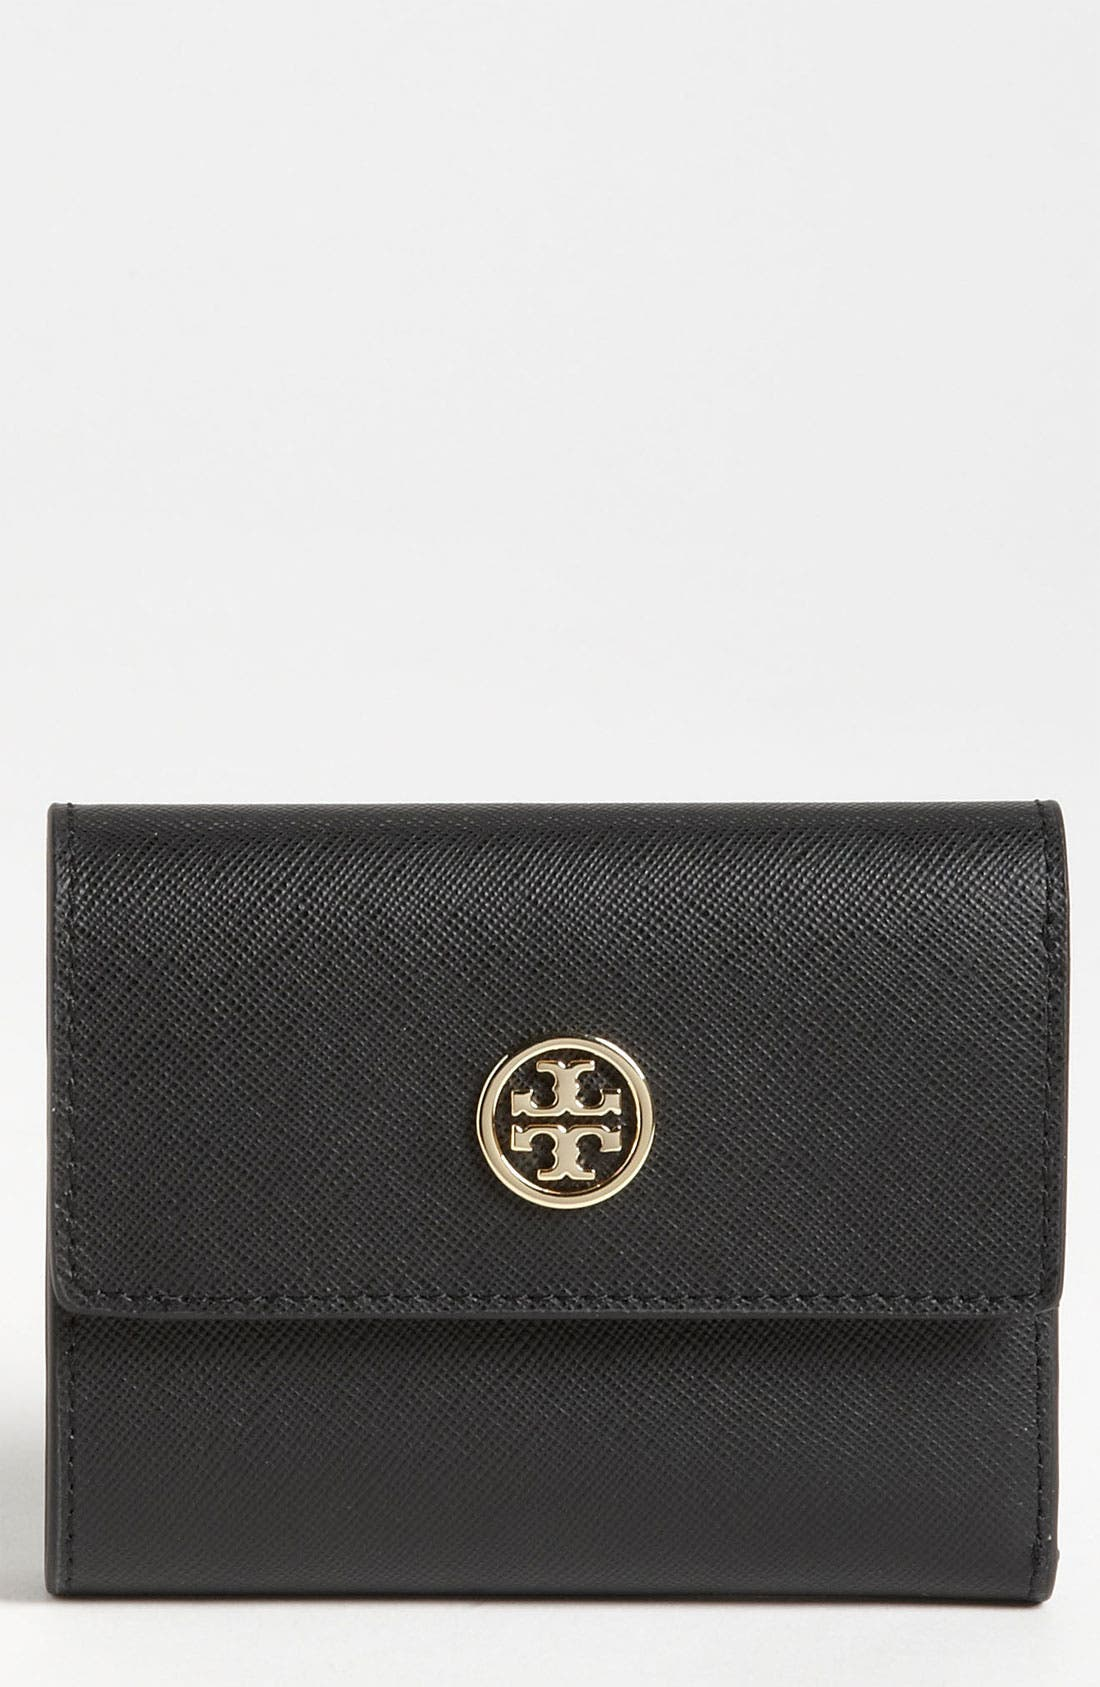 Main Image - Tory Burch 'Robinson' Saffiano Leather French Wallet